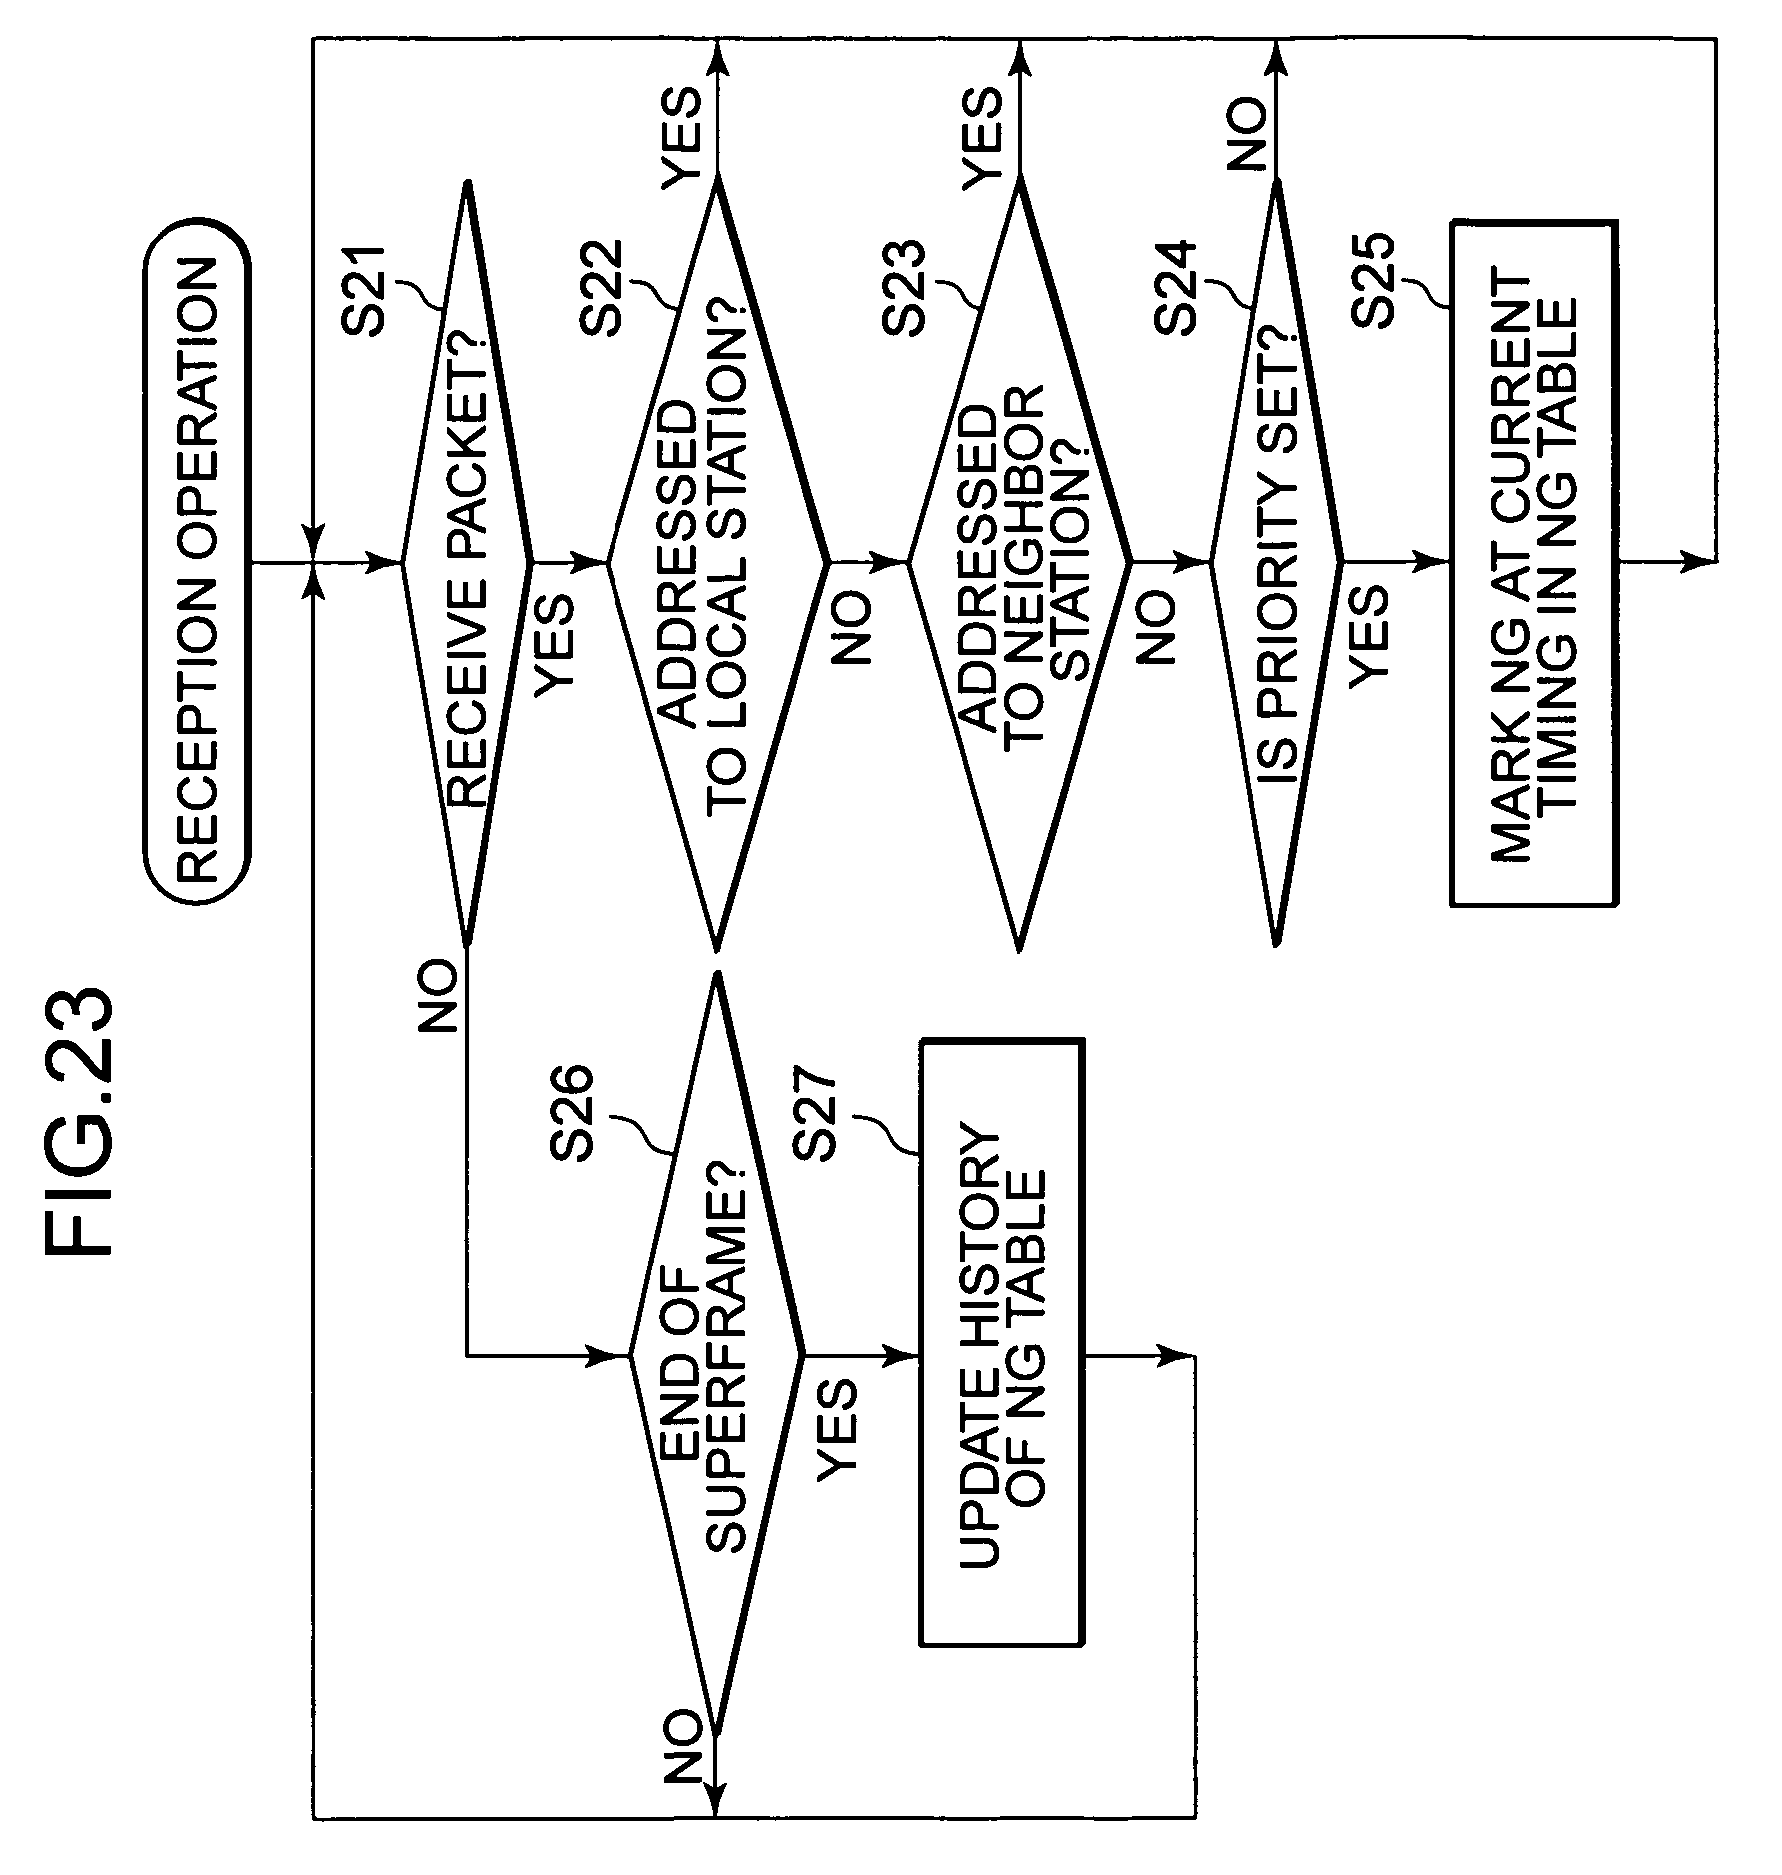 transmission of wireless message based on embedded system Management information systems chapter 7 management information systems managing the digital firm 12 ed laudon & laudon chapter 7, telecommmunications, the internet, and wireless technology study.